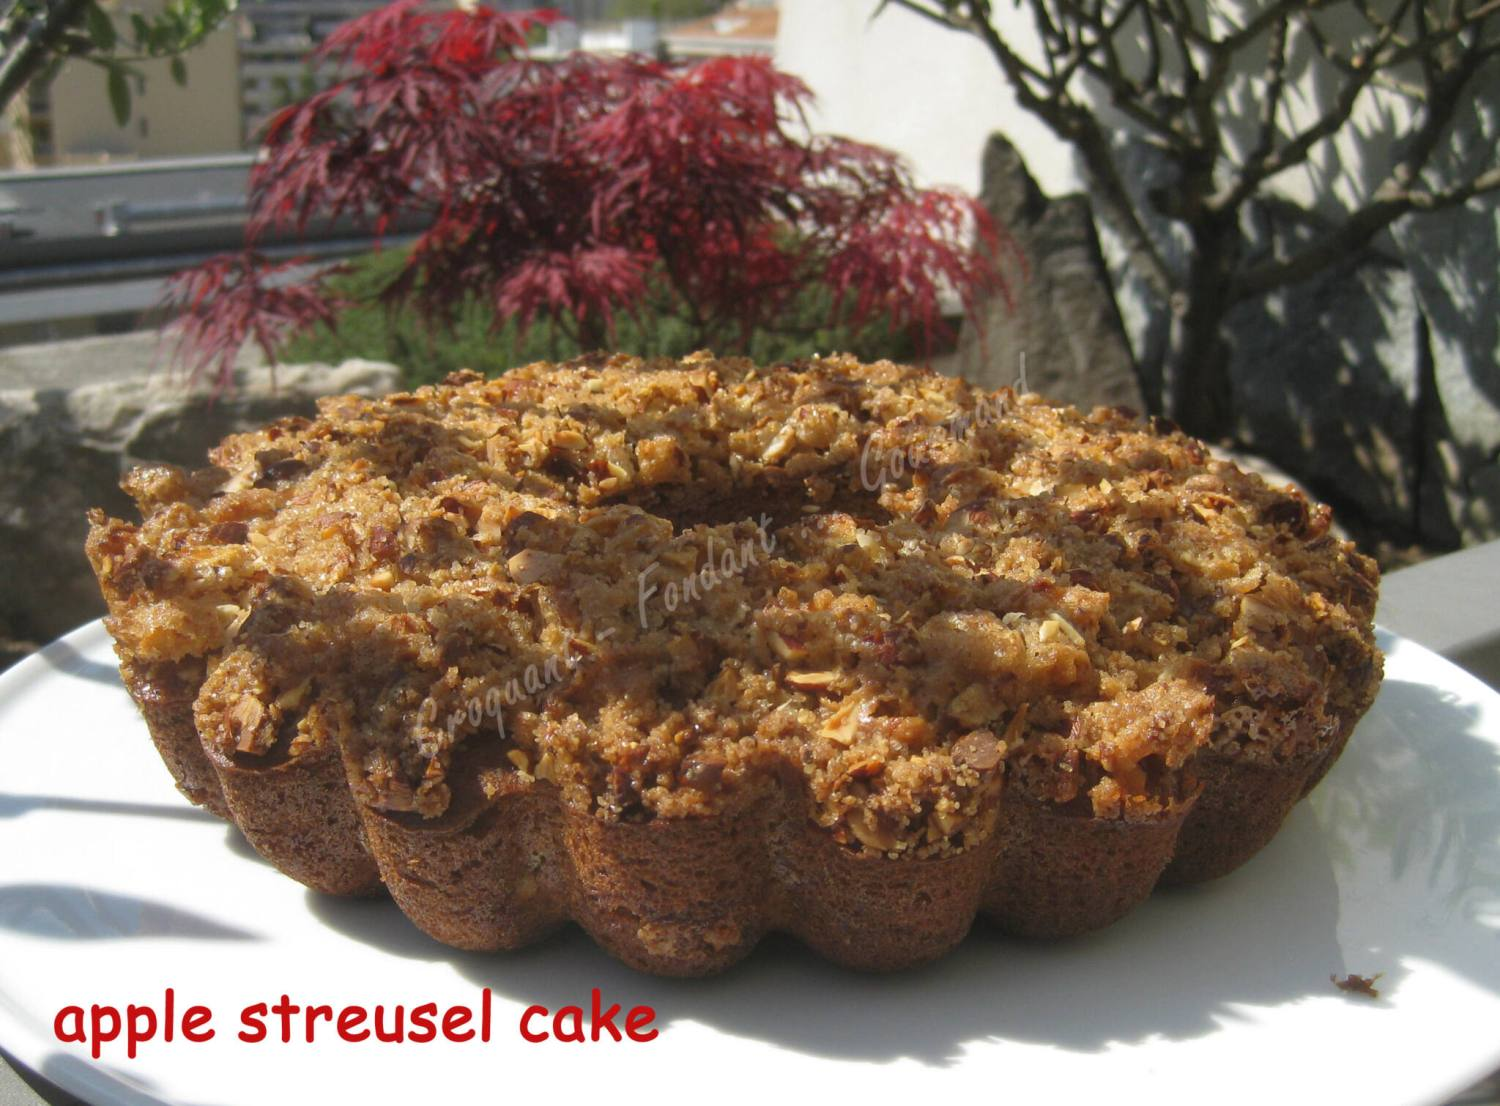 apple streusel cake IMG_5310_32875